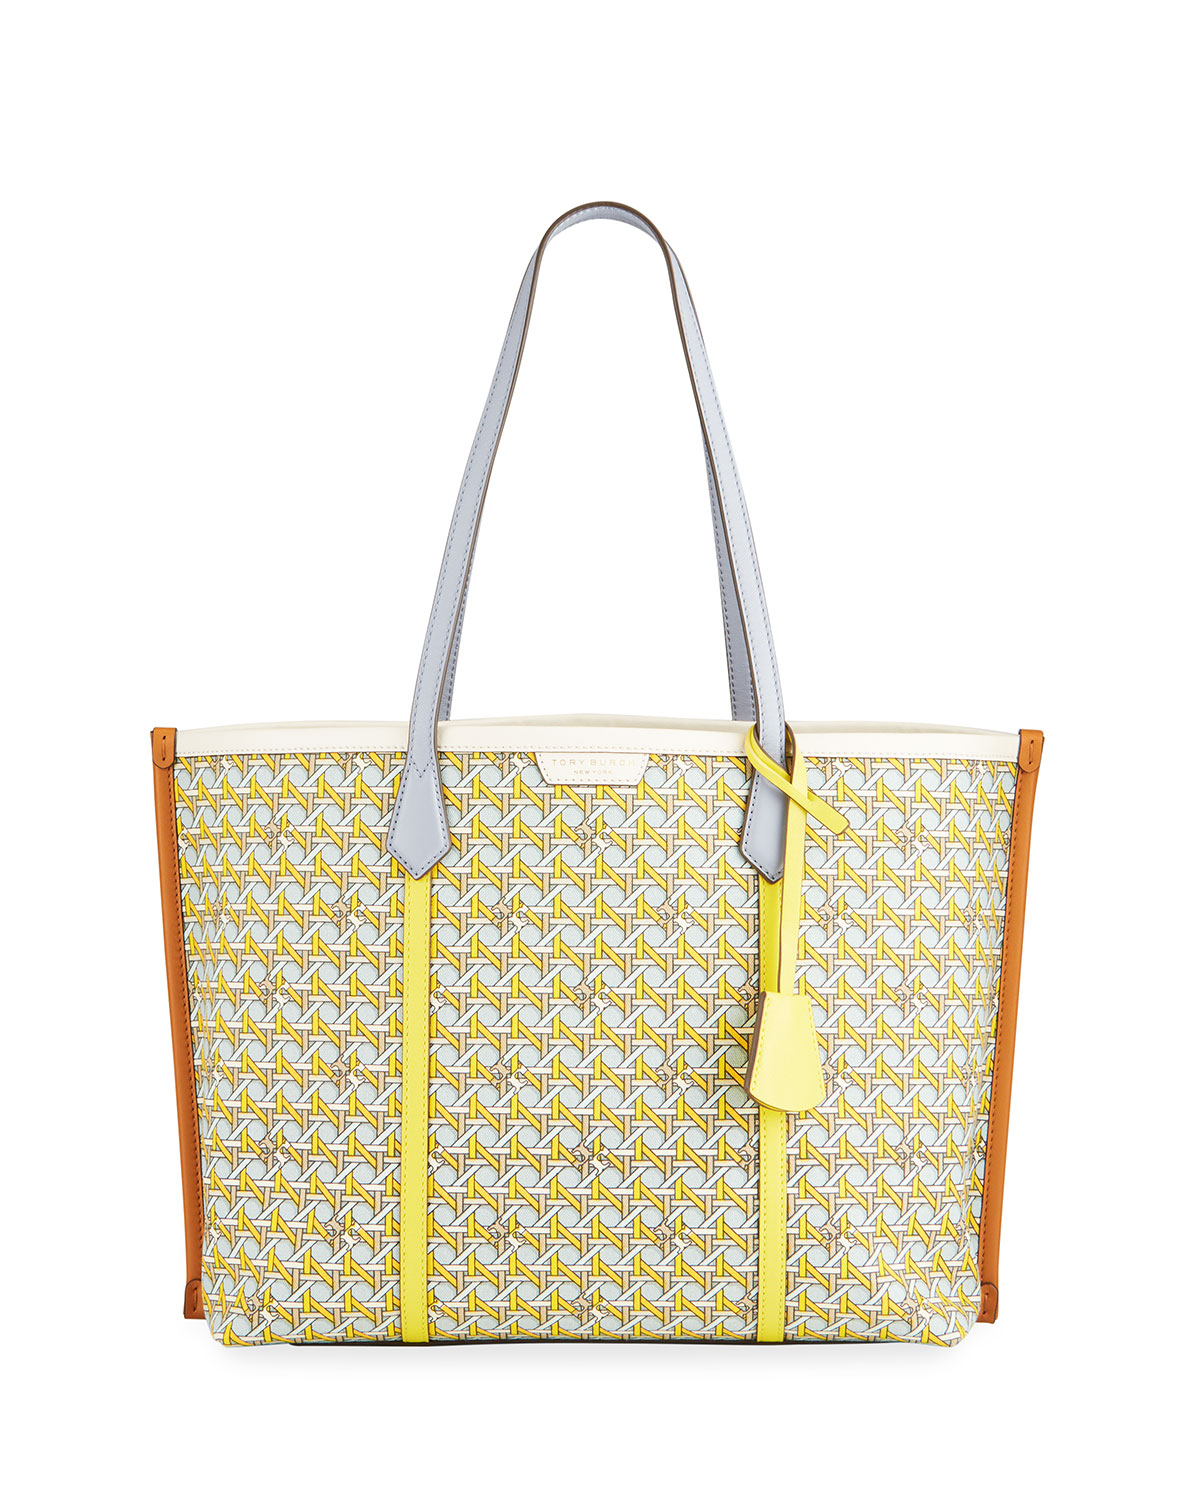 Tory Burch Canvases PERRY PRINTED CANVAS TOTE BAG